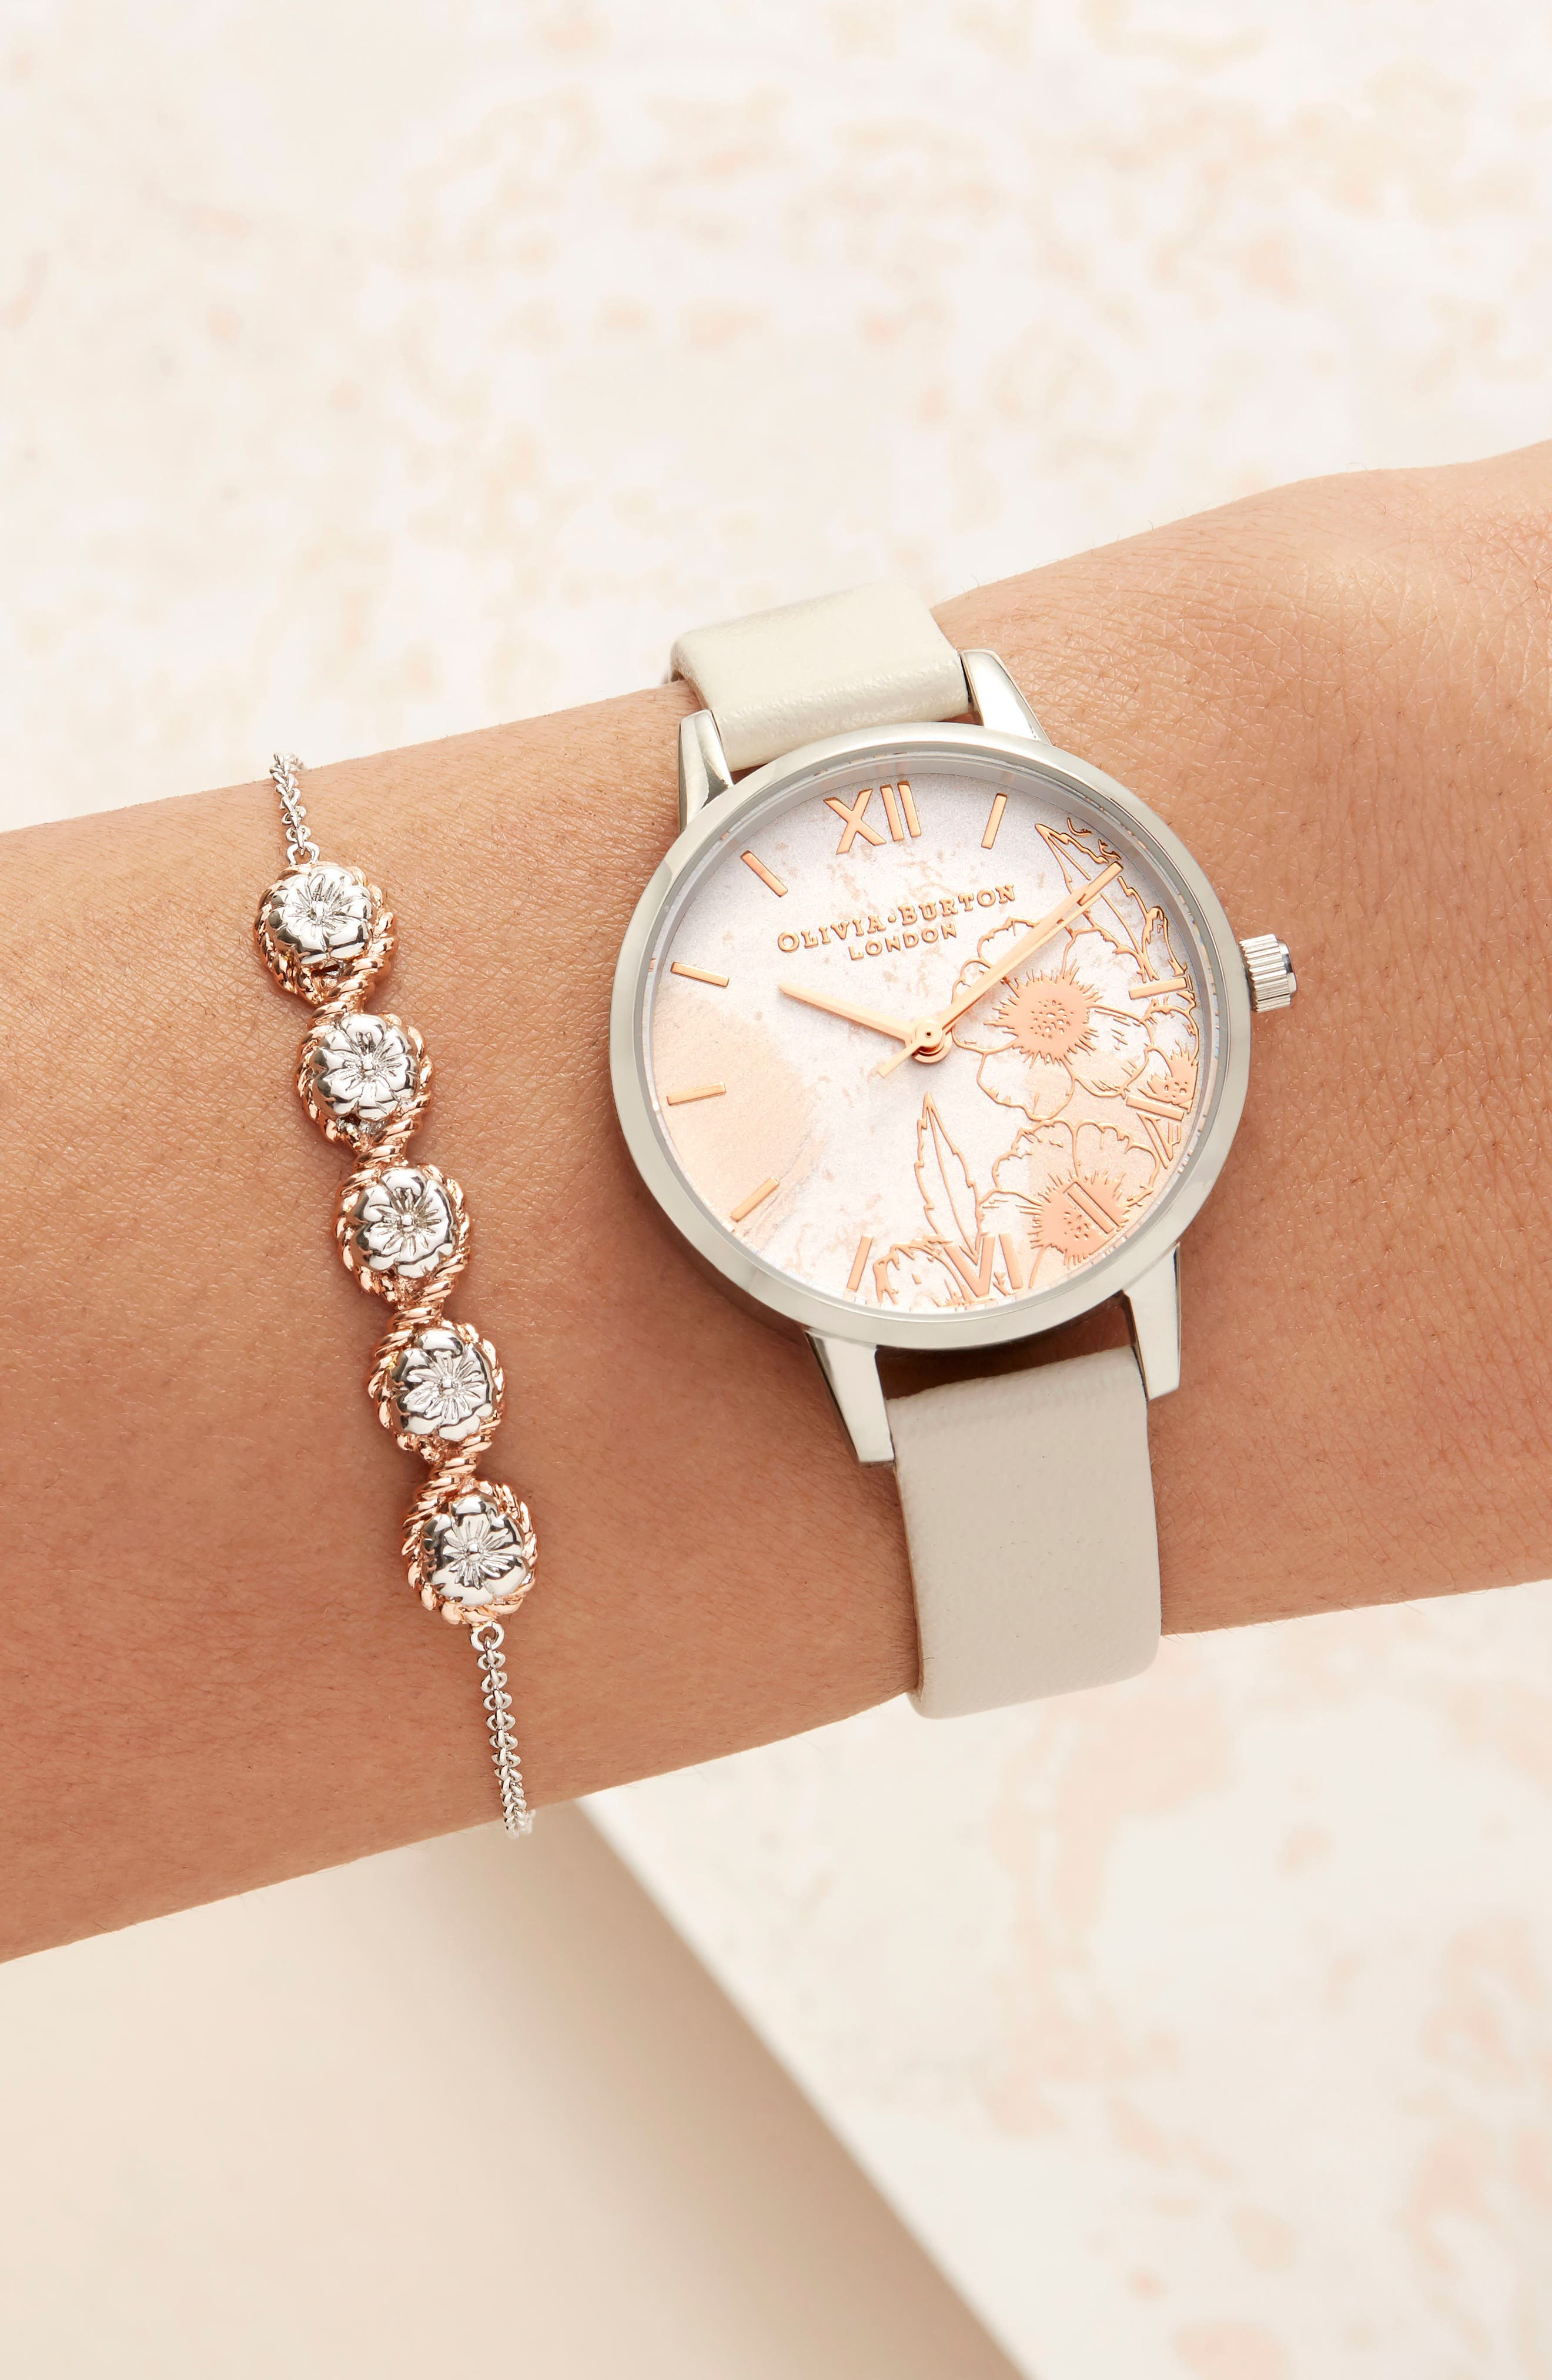 Abstract Floral Leather Strap Watch, 30mm,                             Alternate thumbnail 7, color,                             NUDE PEACH/ FLORAL/ SILVER